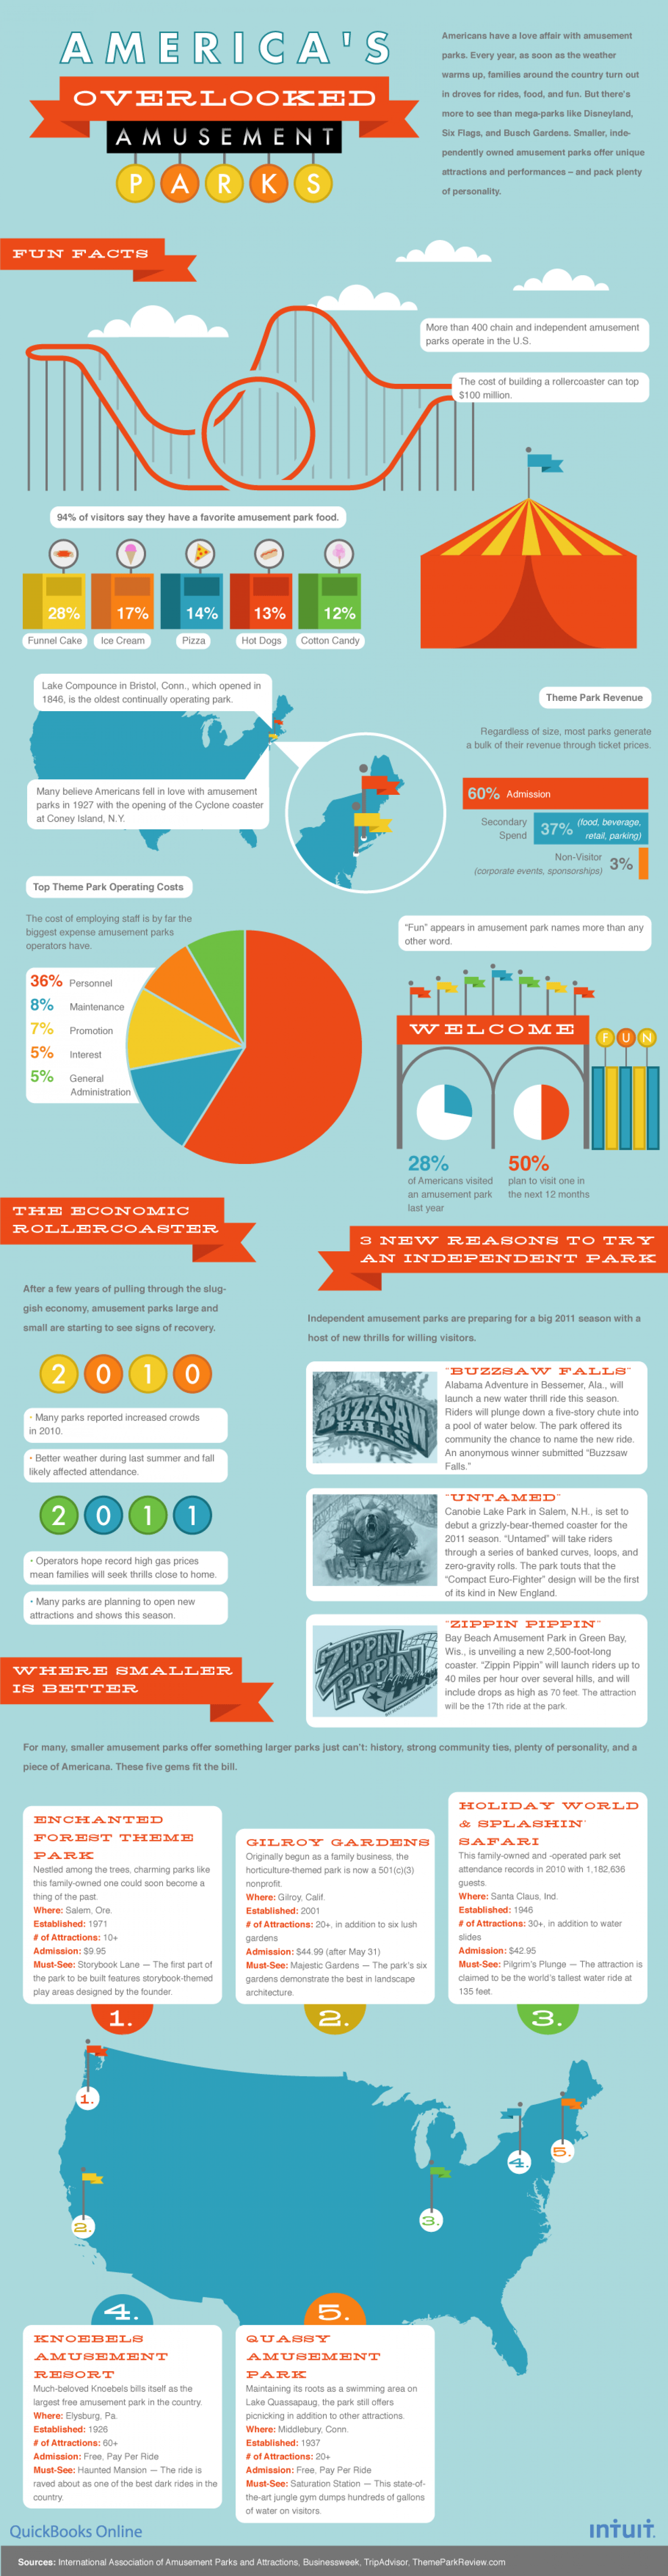 America's Overlooked Amusement Parks Infographic